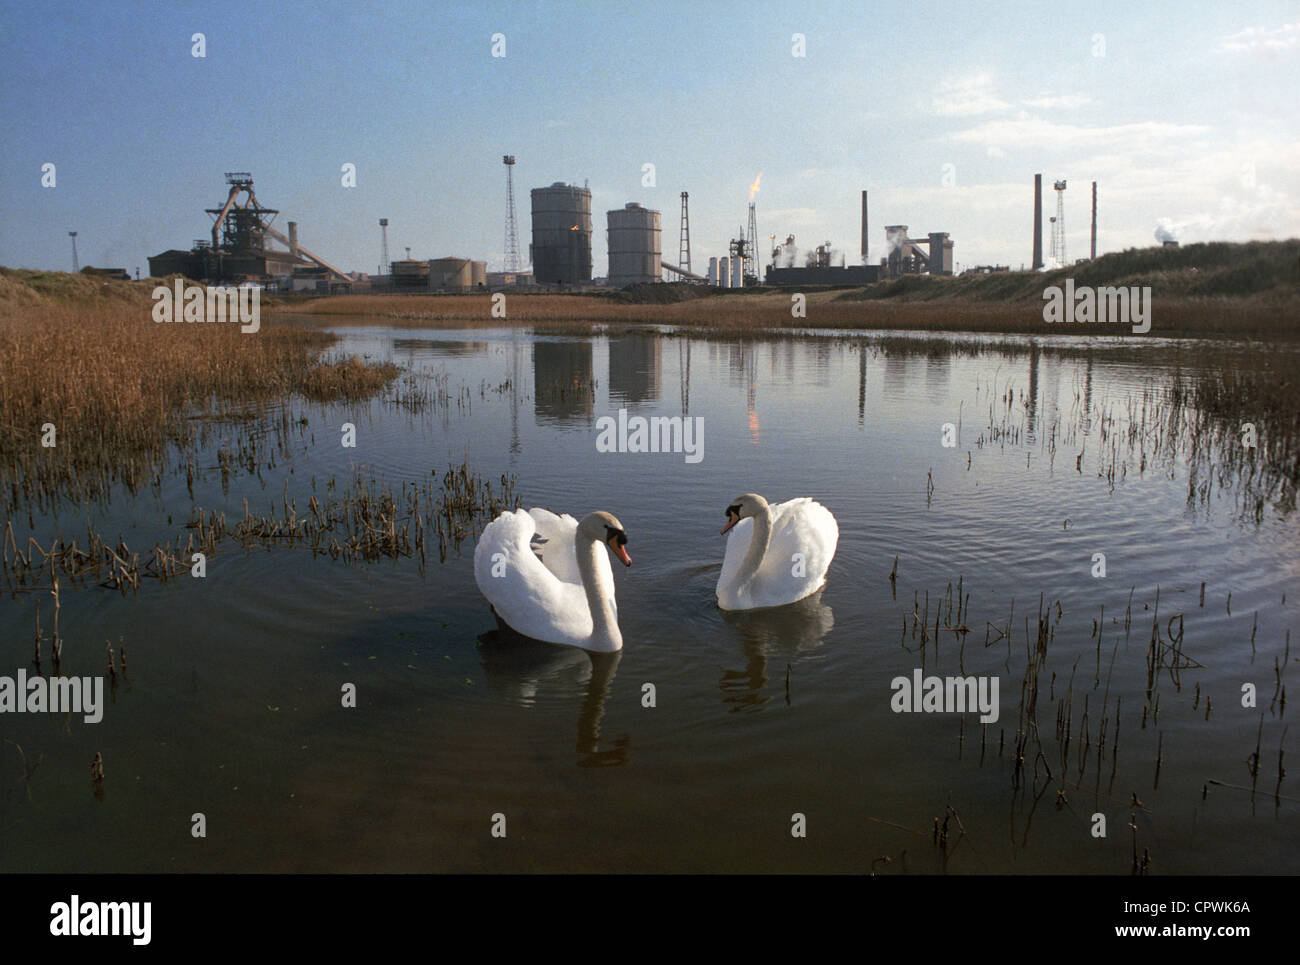 Two swans & the former British Steel works at Redcar, now operated by Sahaviriya Steel Industries (SSI). - Stock Image